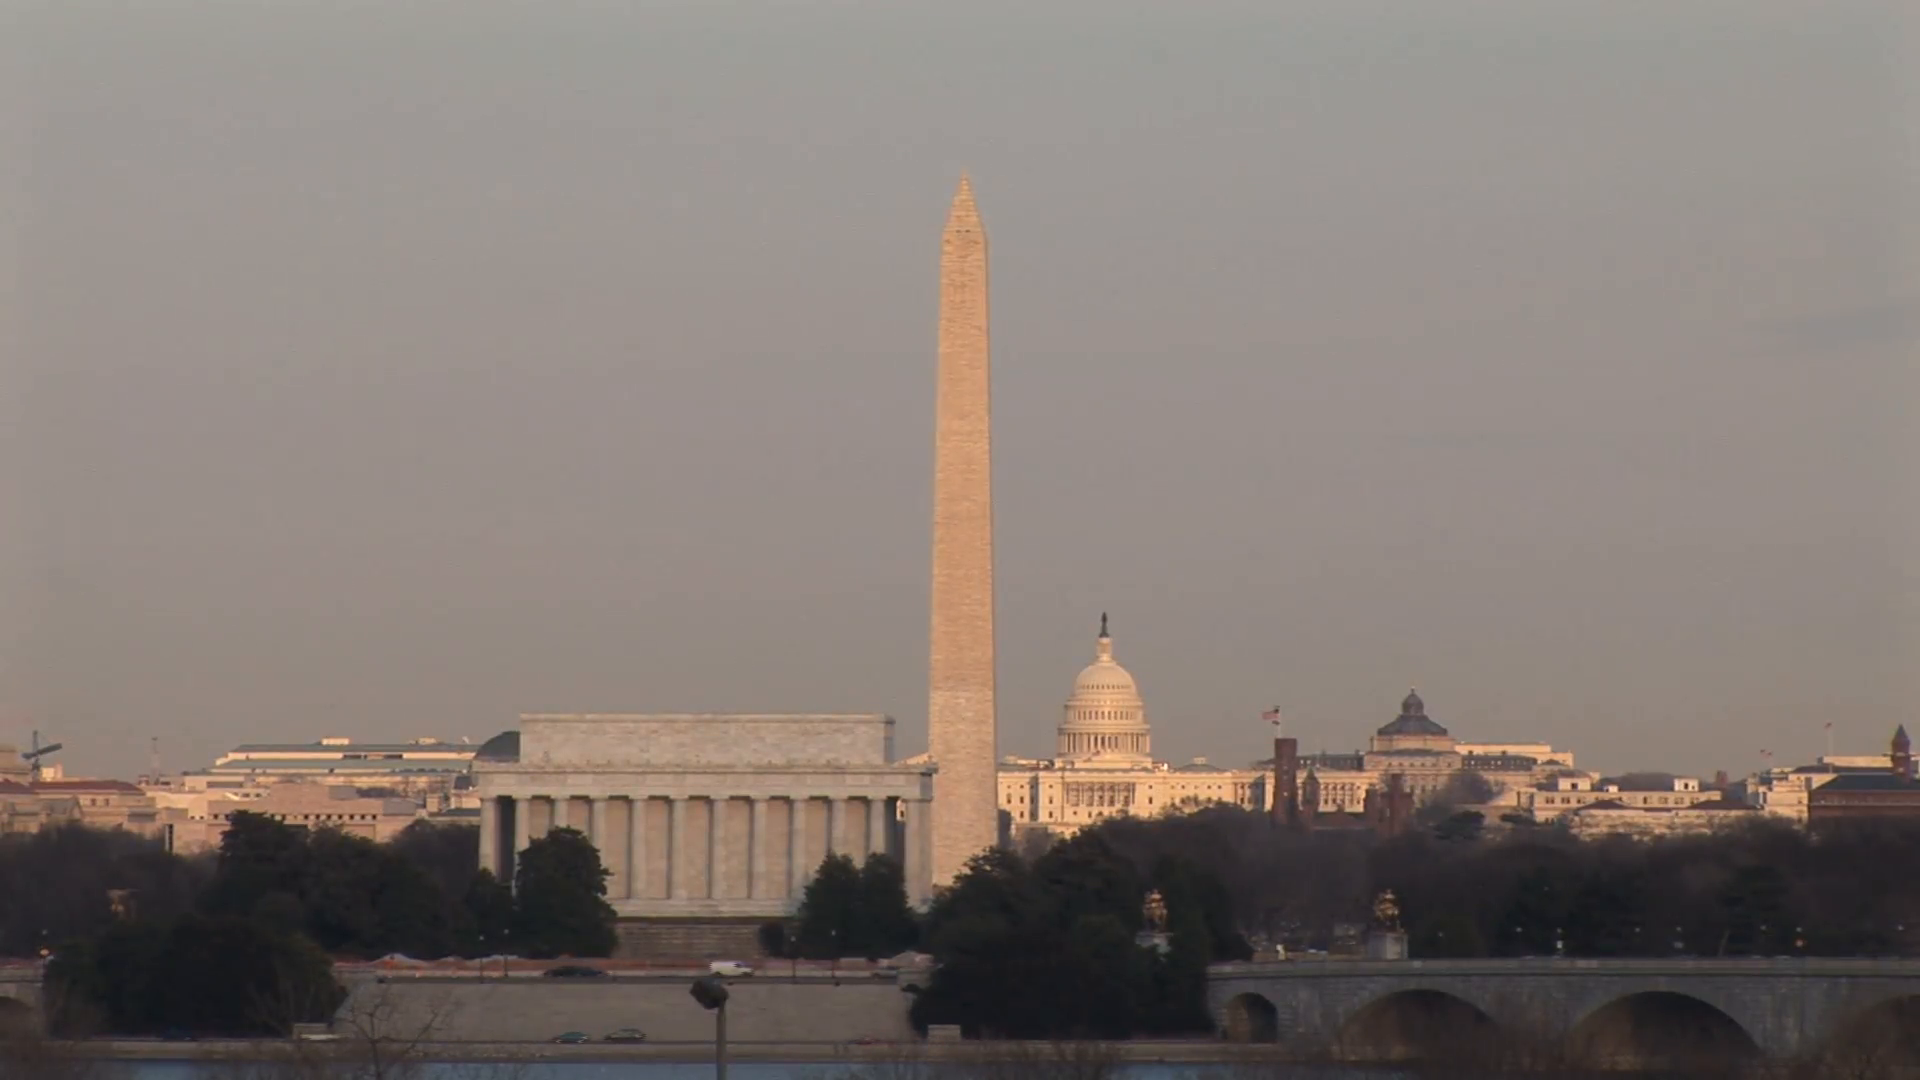 HD ES: Washington DC Skyline Highlights The Washington Monument, The US  Capitol Building, And The Lincoln Memorial. Filmed Using A Sony EX-3 Circa  2016 PlusPng.com  - Capitol Building PNG HD